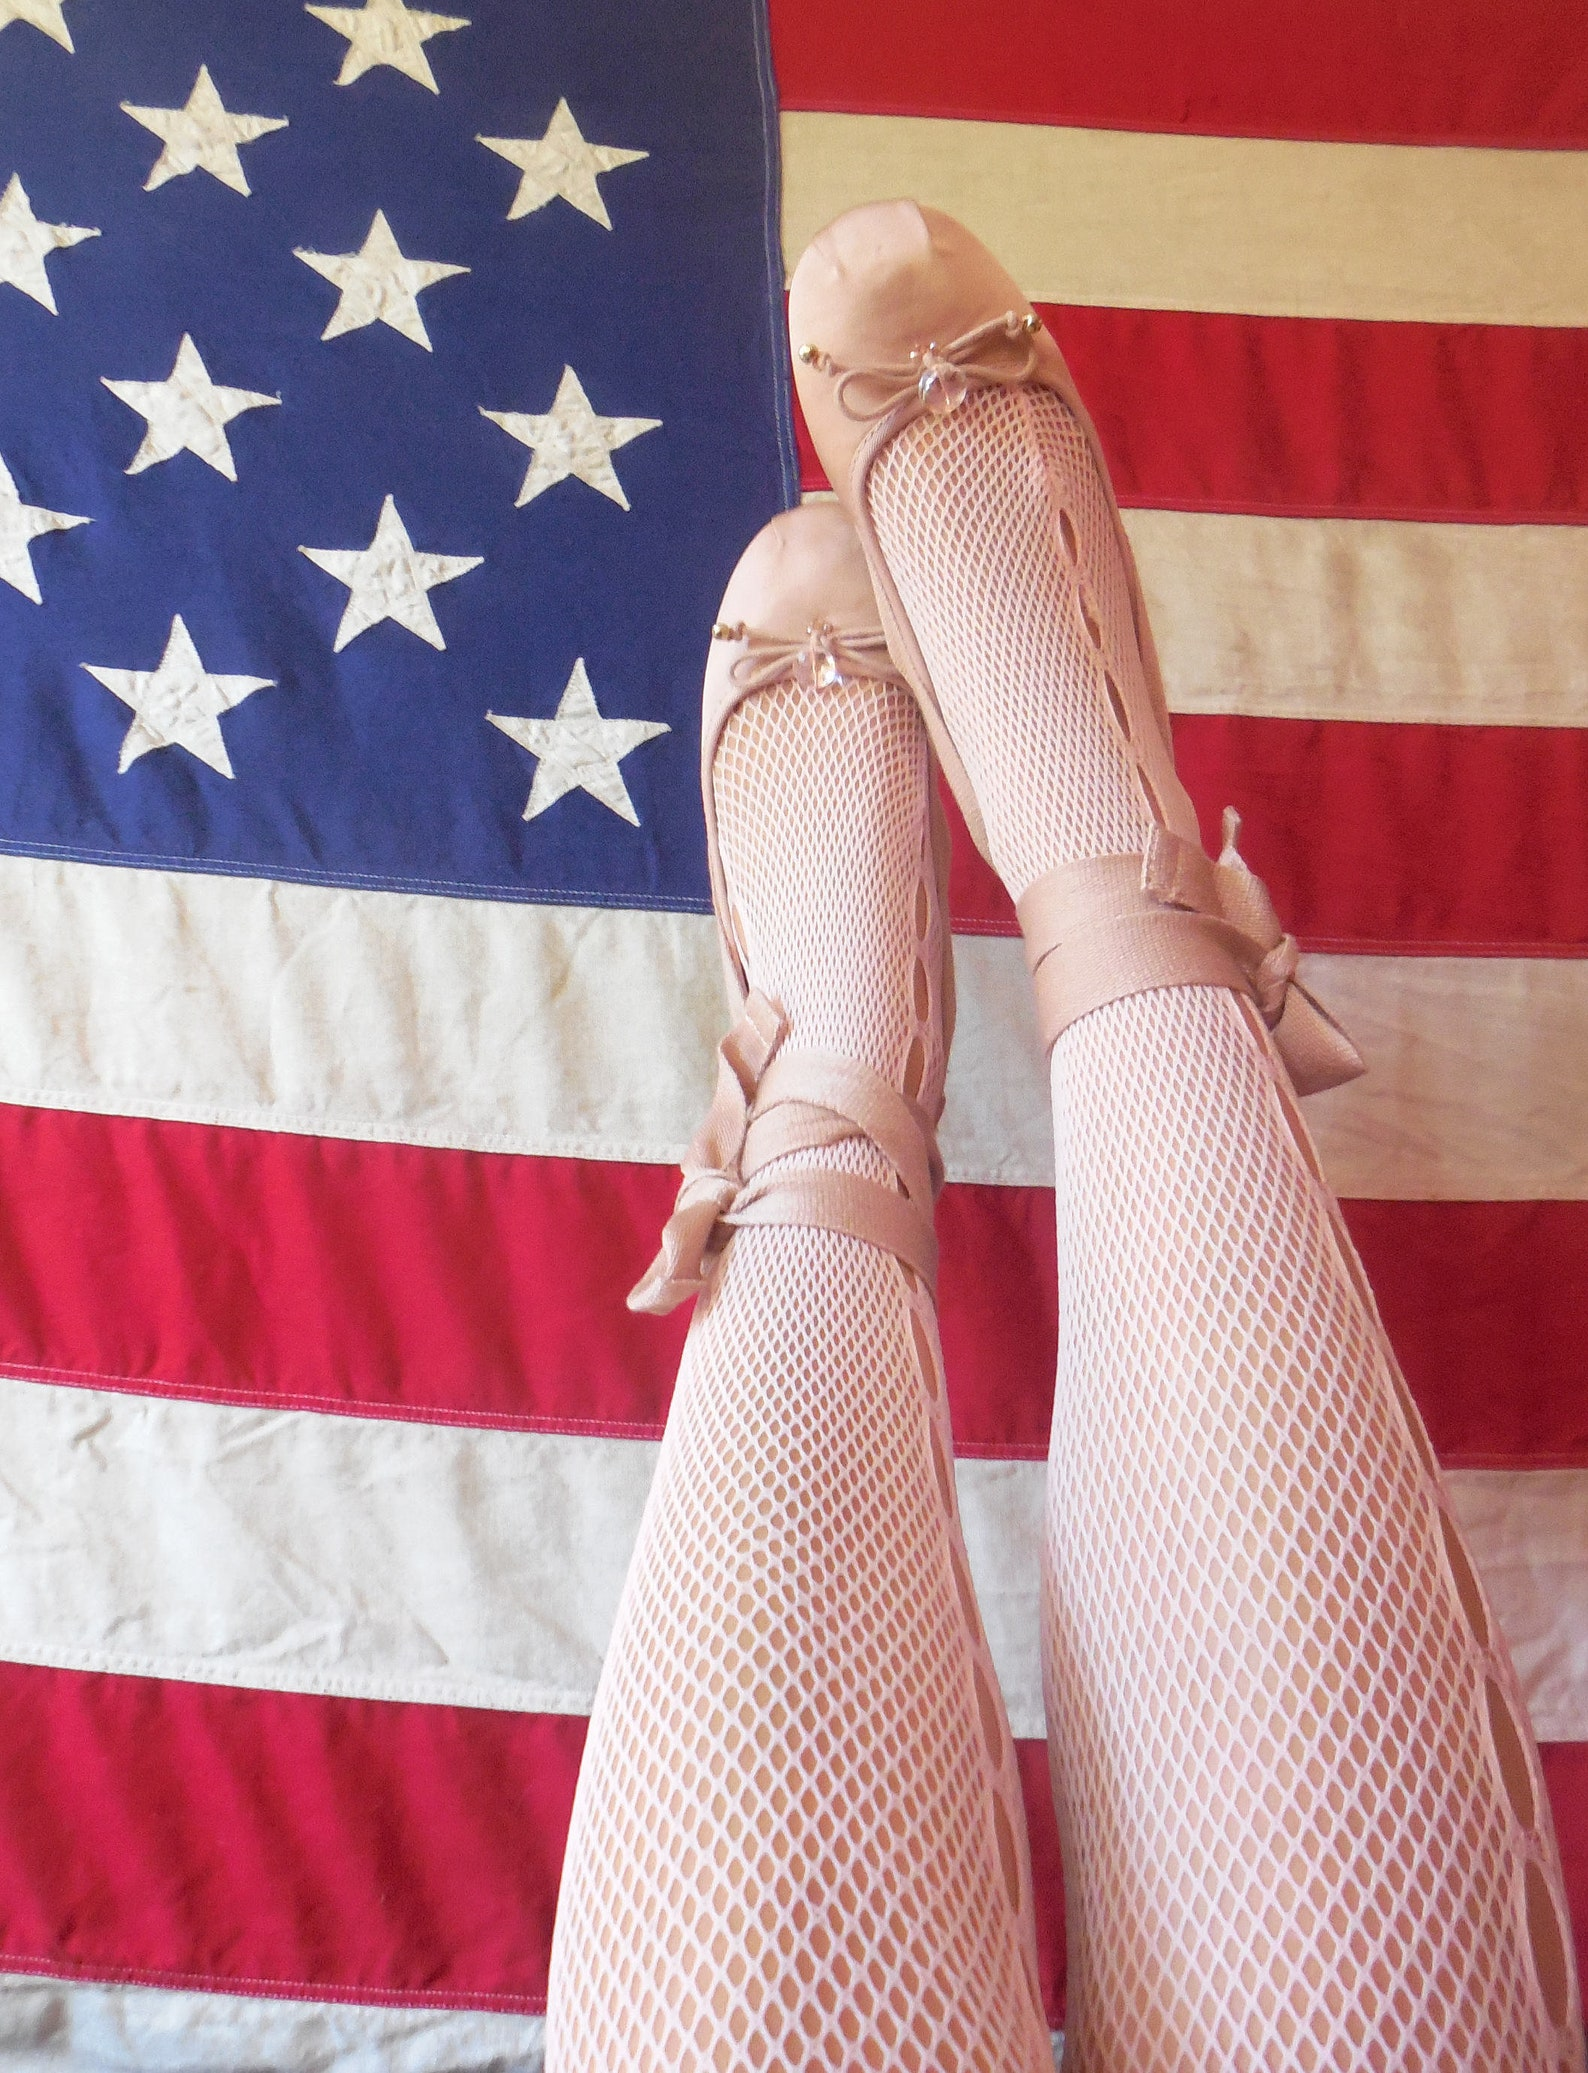 sale * twinkle toes * nude-pink hand-embroidered ballet flats with bells, crystal beads, and wrap around ties